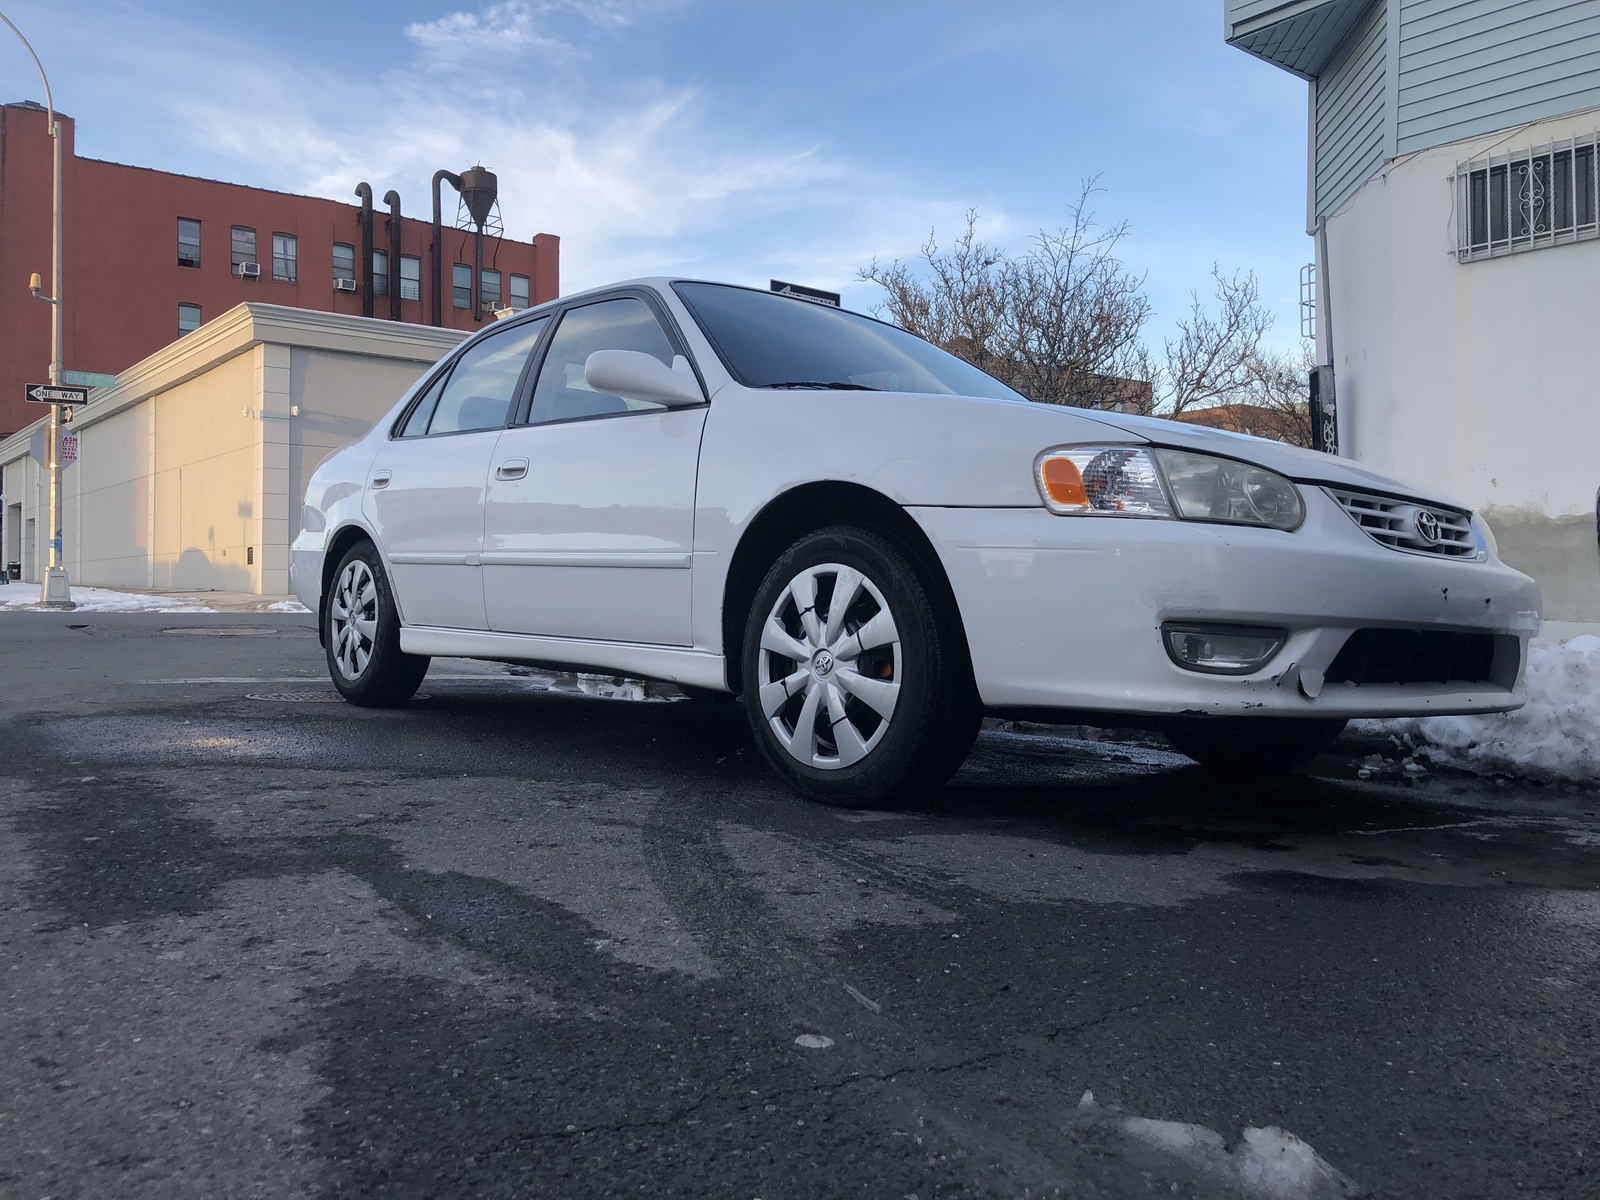 toyota corolla questions what year transmissions for corollas are interchangeable cargurus toyota corolla questions what year